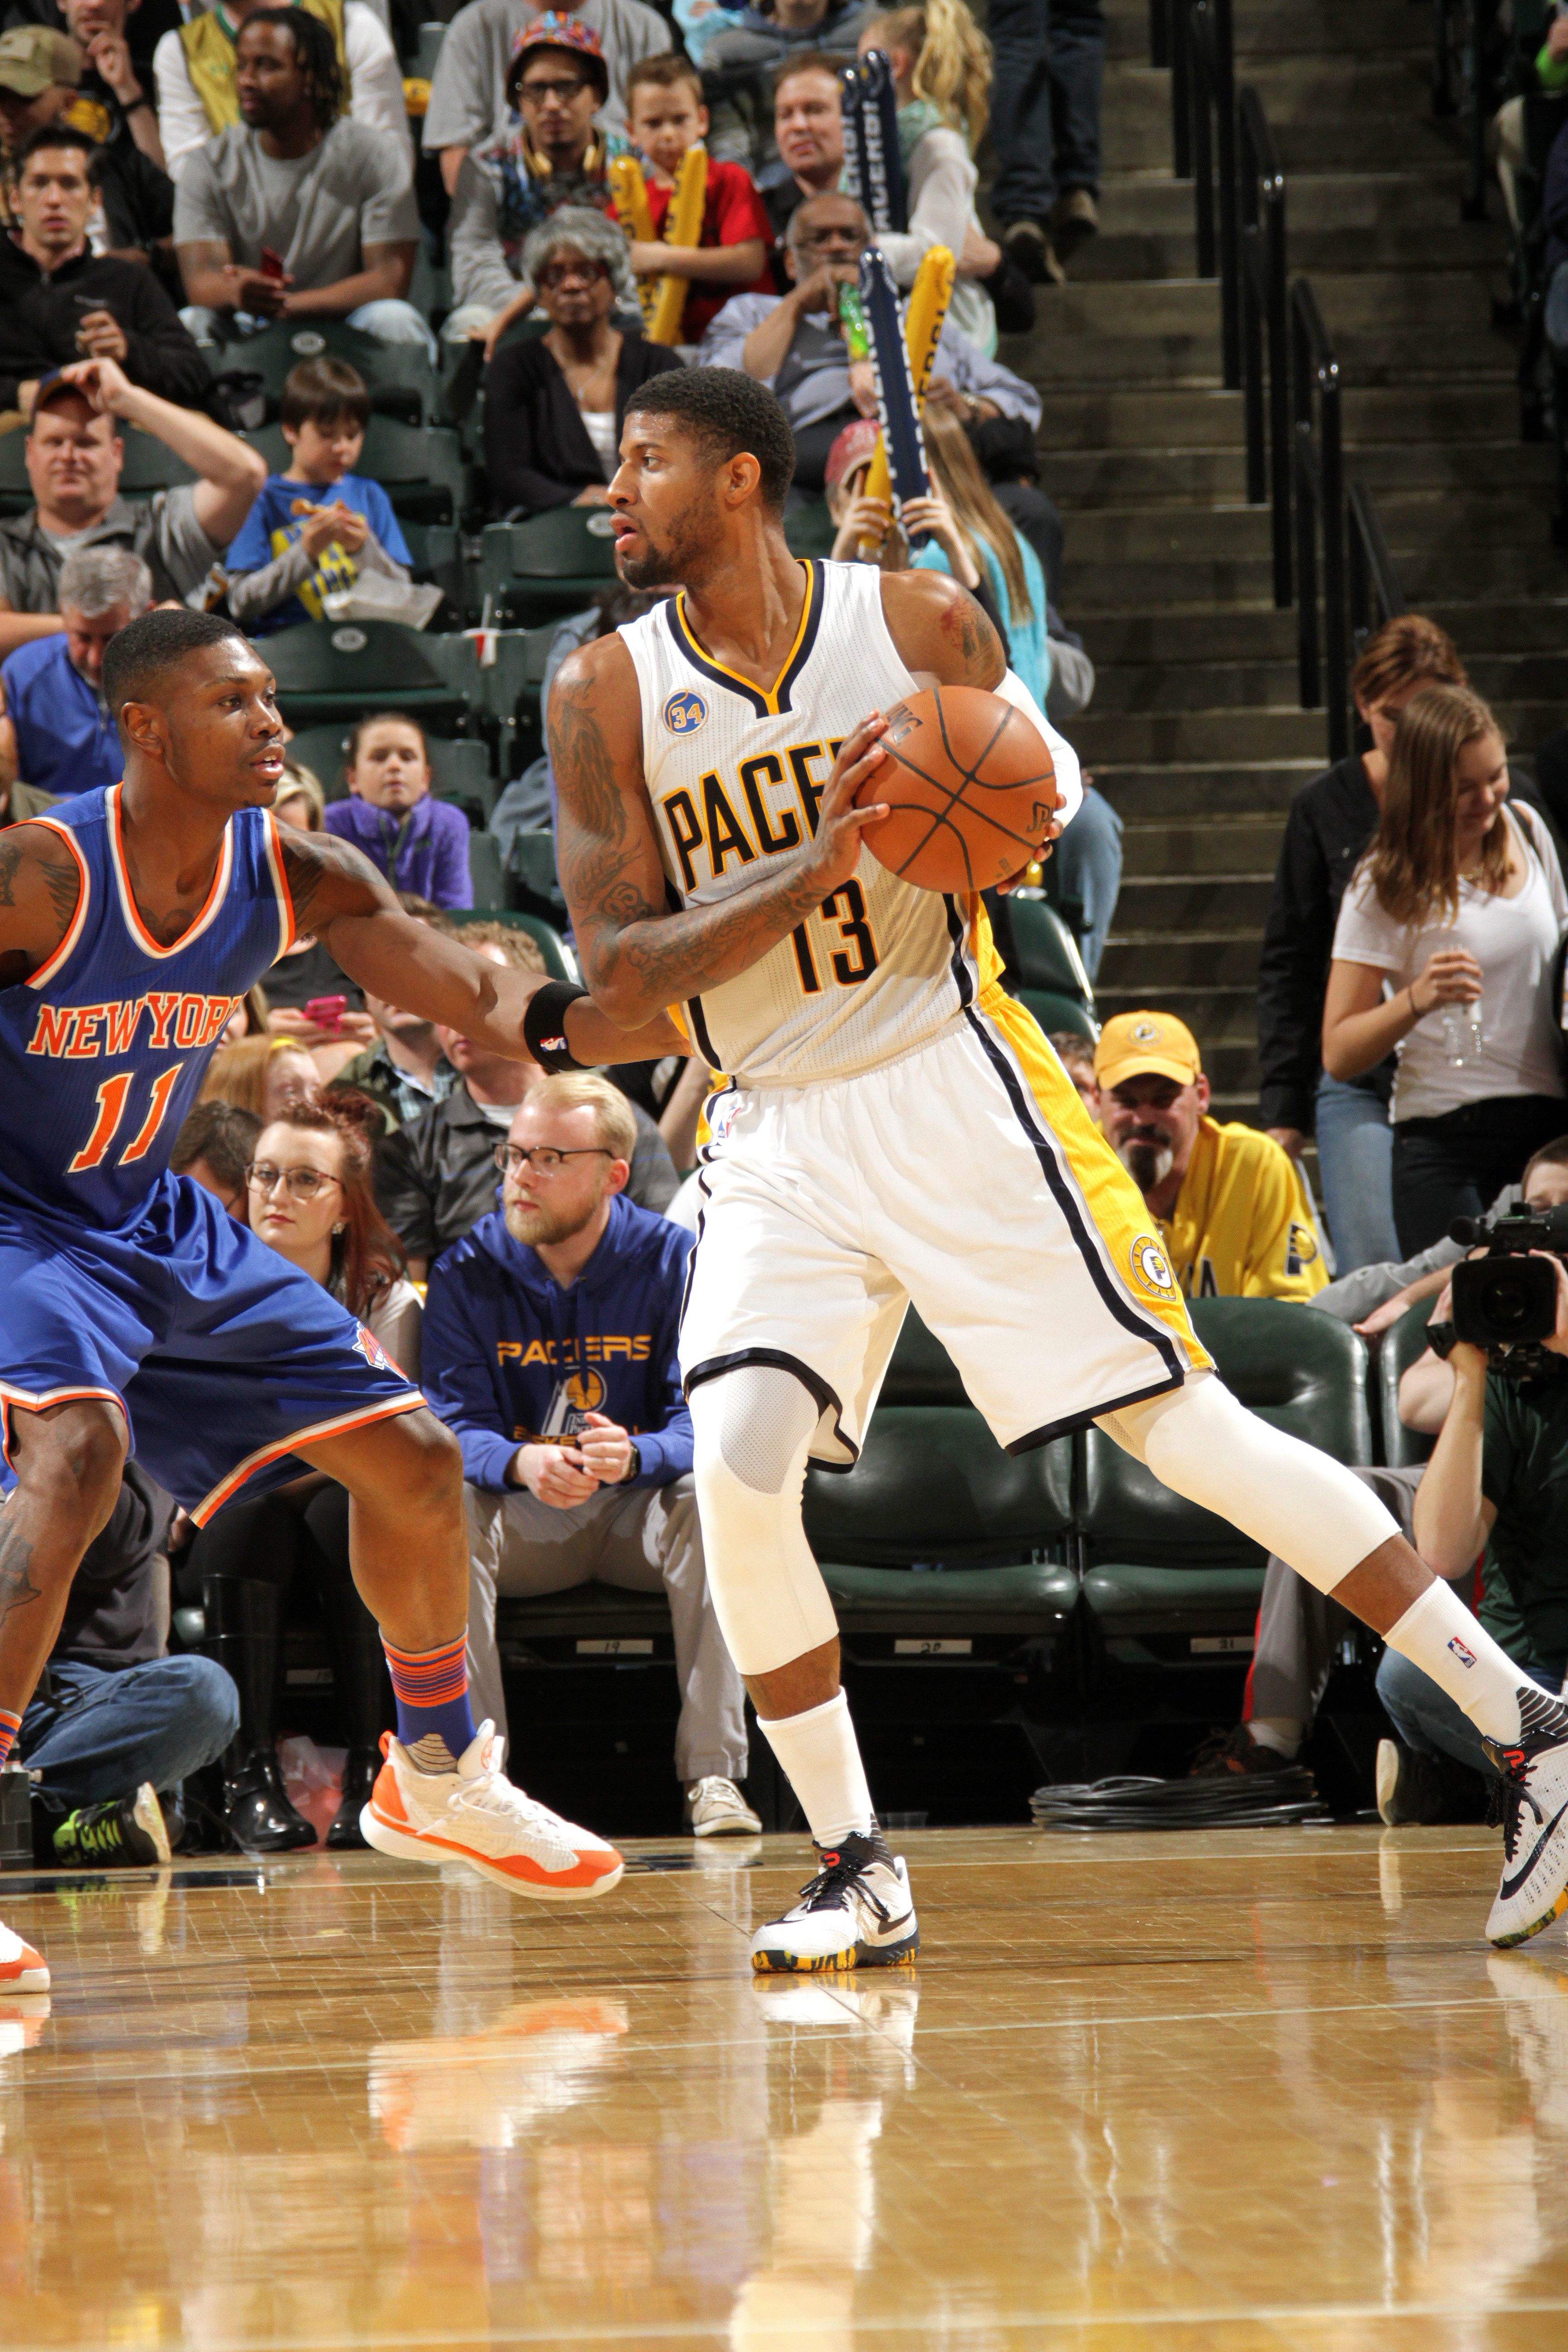 INDIANAPOLIS, IN - APRIL 12: Paul George #13 of the Indiana Pacers handles the ball during the game against the New York Knicks on April 12, 2016 at Bankers Life Fieldhouse in Indianapolis, Indiana. (Photo by Ron Hoskins/NBAE via Getty Images)